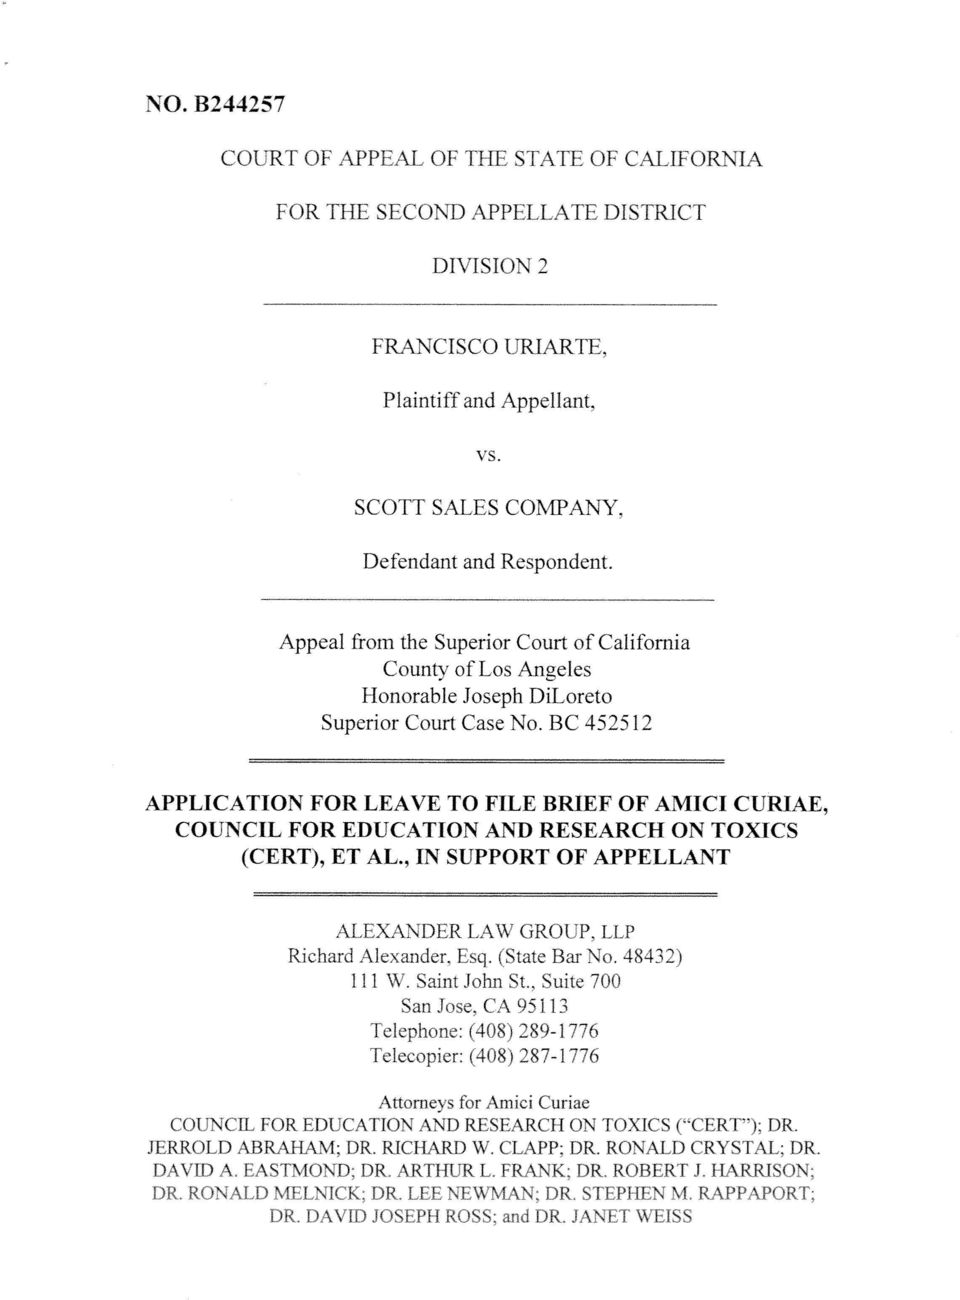 BC 452512 APPLICATION FOR LEAVE TO FILE BRIEF OF AMICI CURIAE, COUNCIL FOR EDUCATION AND RESEARCH ON TOXICS (CERT), ET AL., IN SUPPORT OF APPELLANT ALEXANDER LAW GROUP, LLP Richard Alexander. Esq.